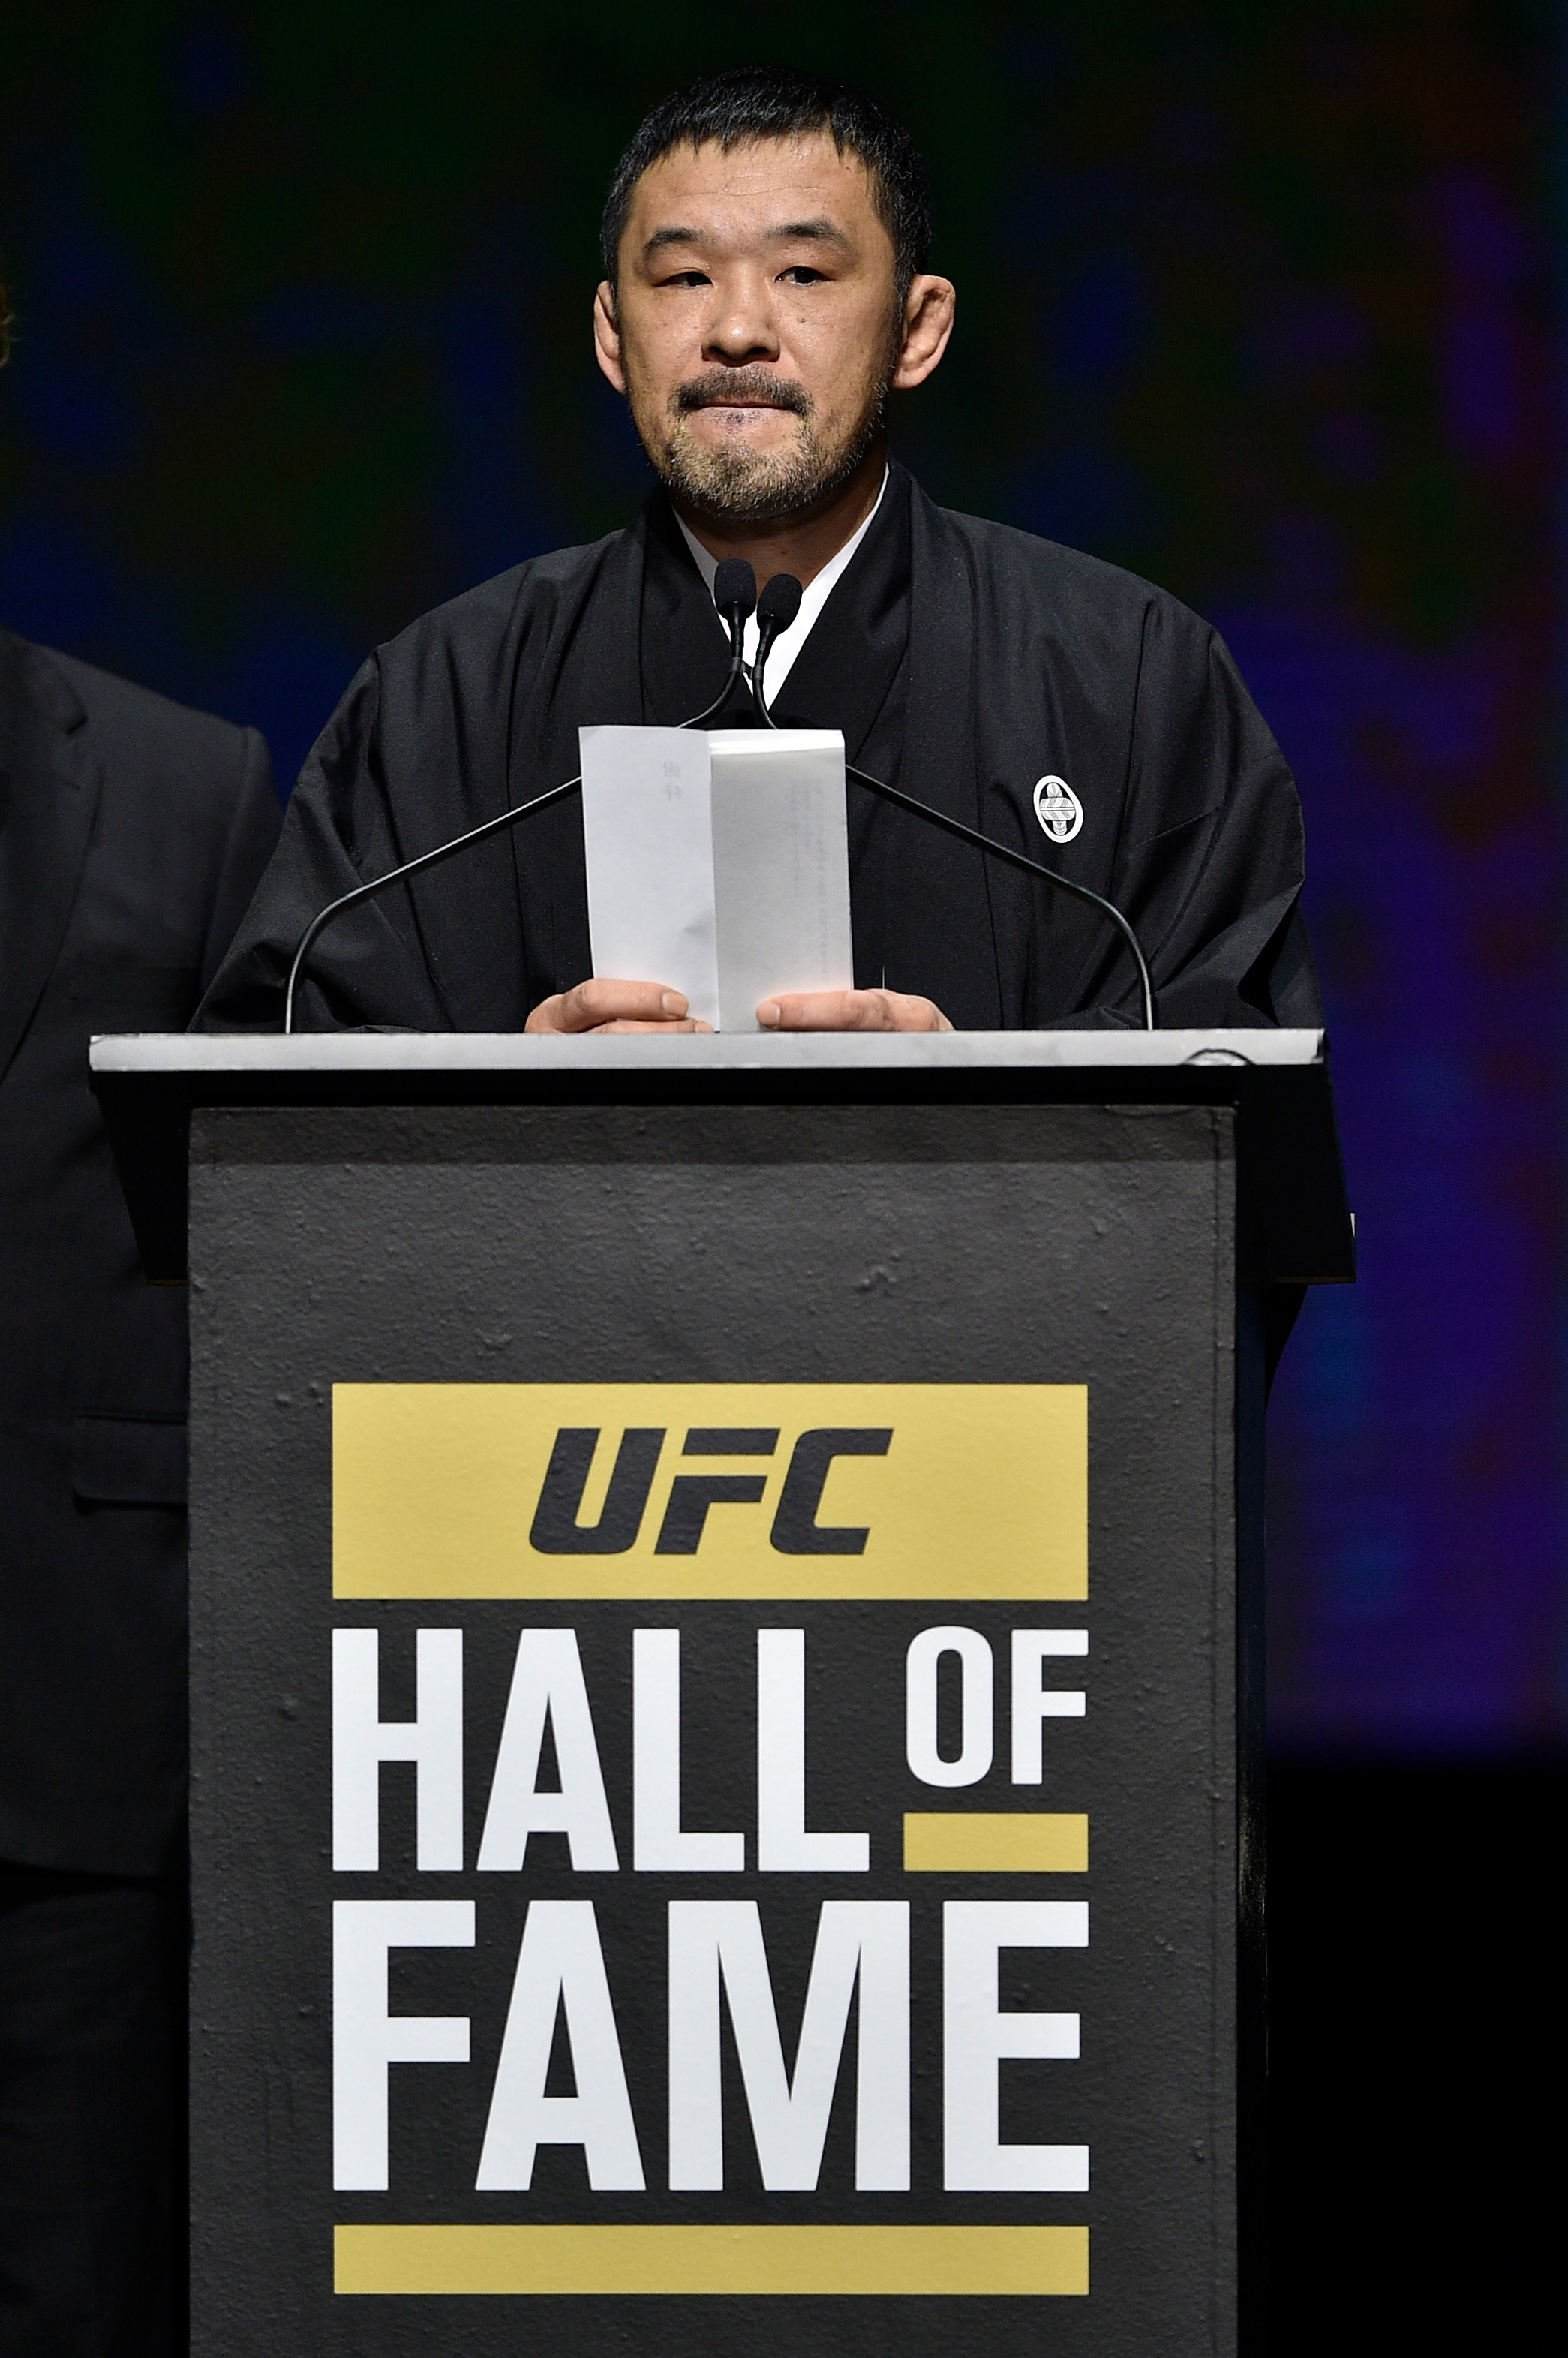 UFC Hall of Fame 2017 Induction Ceremony